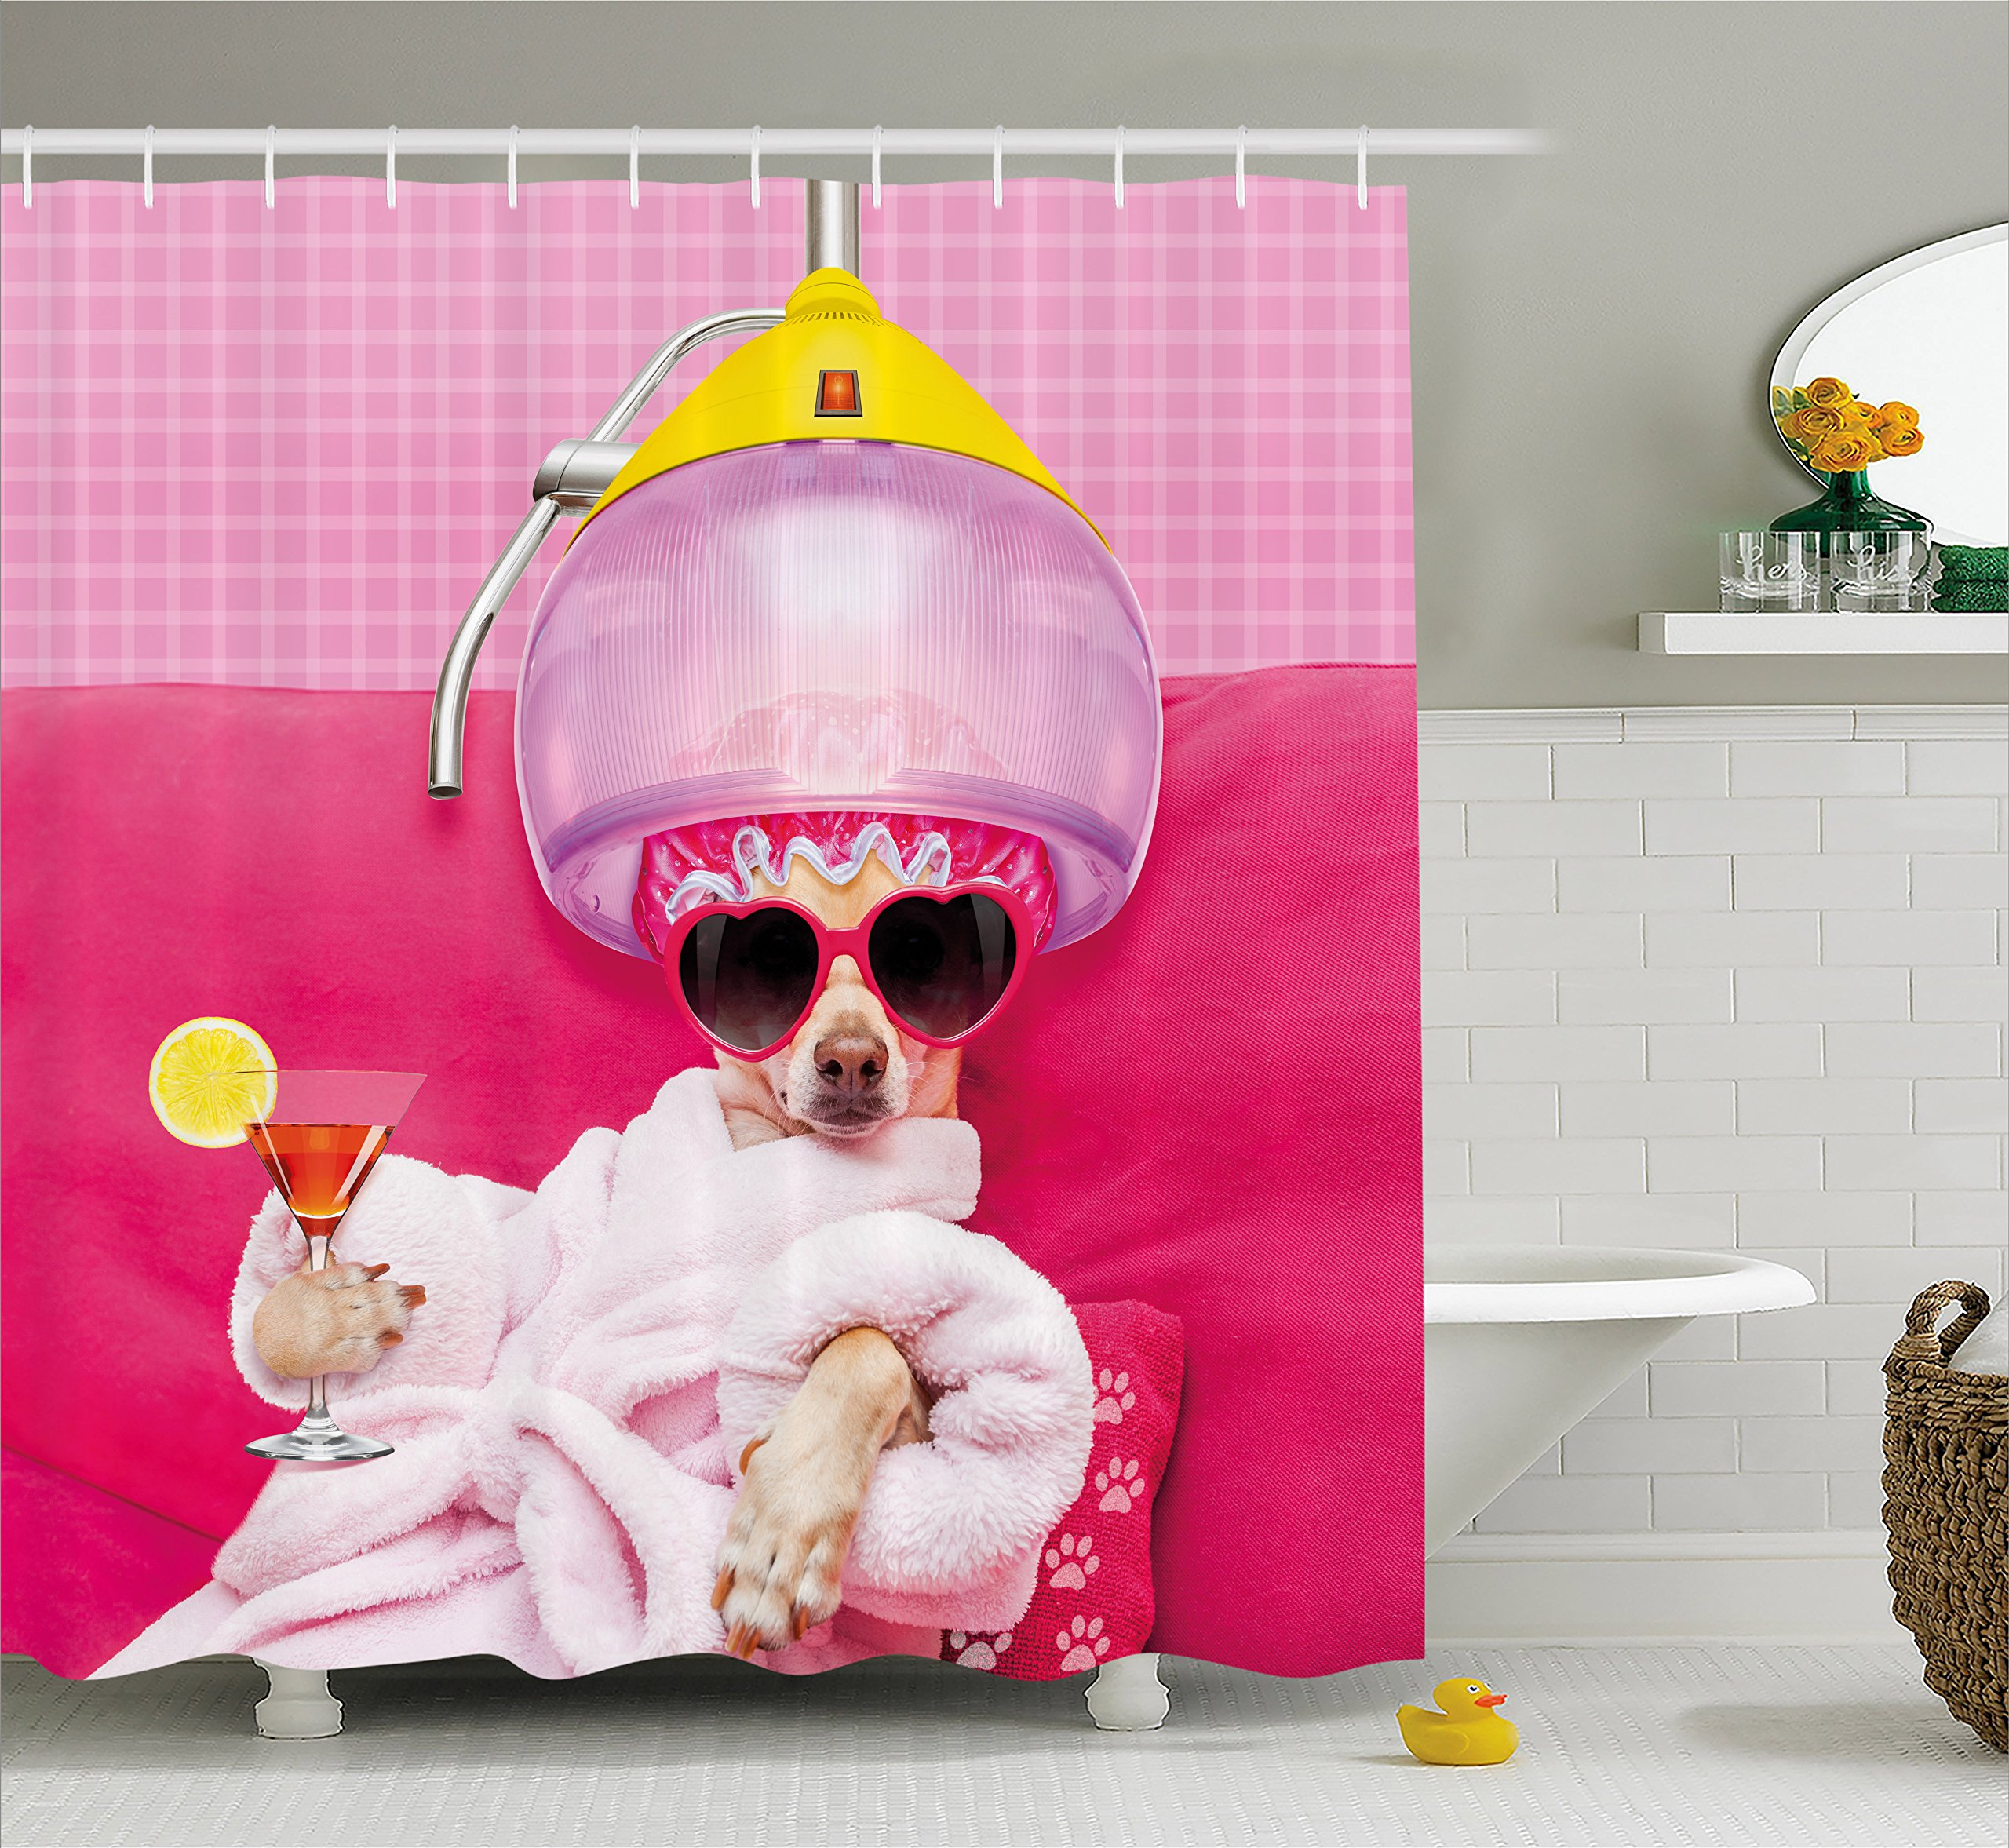 Ambesonne Funny Shower Curtain by, Chihuahua Dog Relaxing and Lying in Wellness Spa Fashion Puppy Comic Print, Fabric Bathroom Decor Set with Hooks, 70 Inches, Magenta Baby Pink